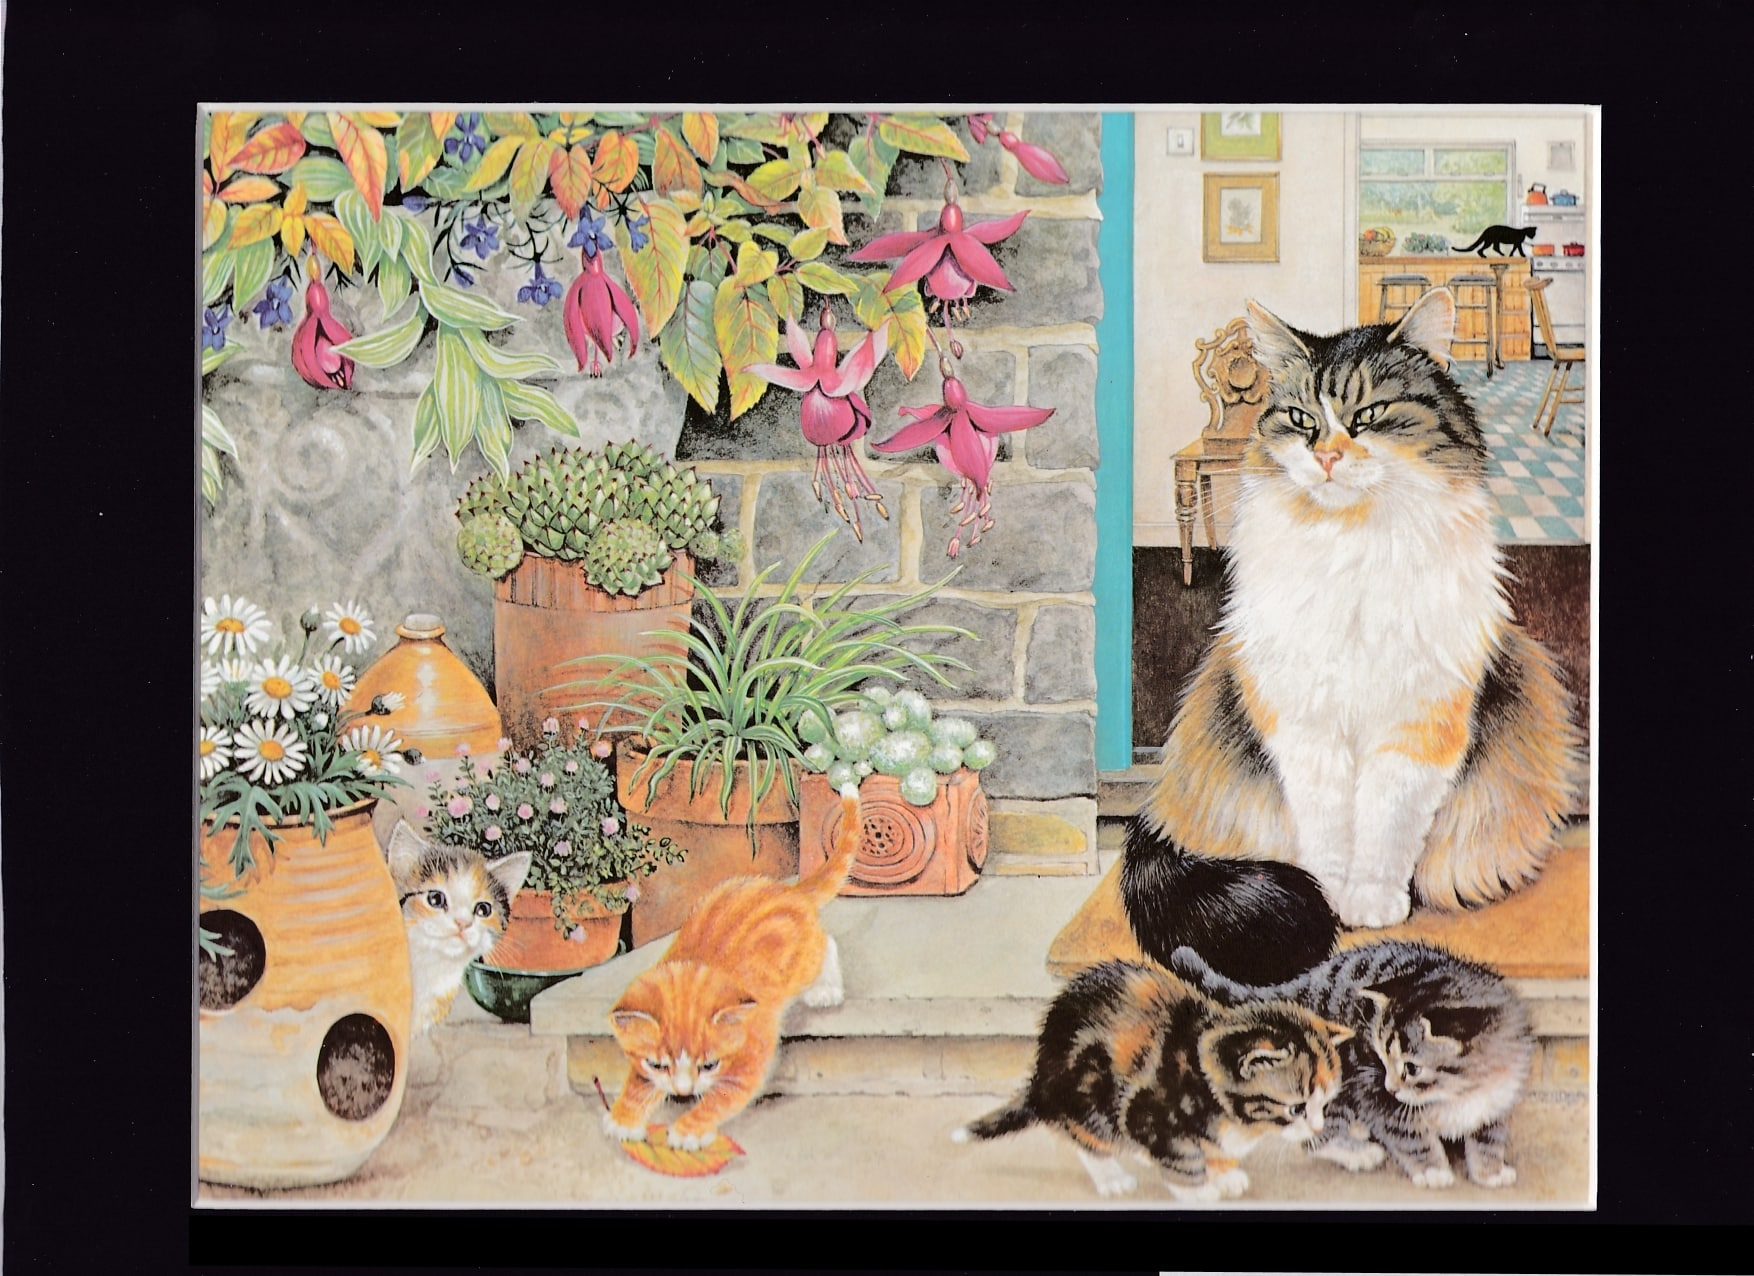 GEMMA-WITH-KITTENS- by Lesley Ann Ivory